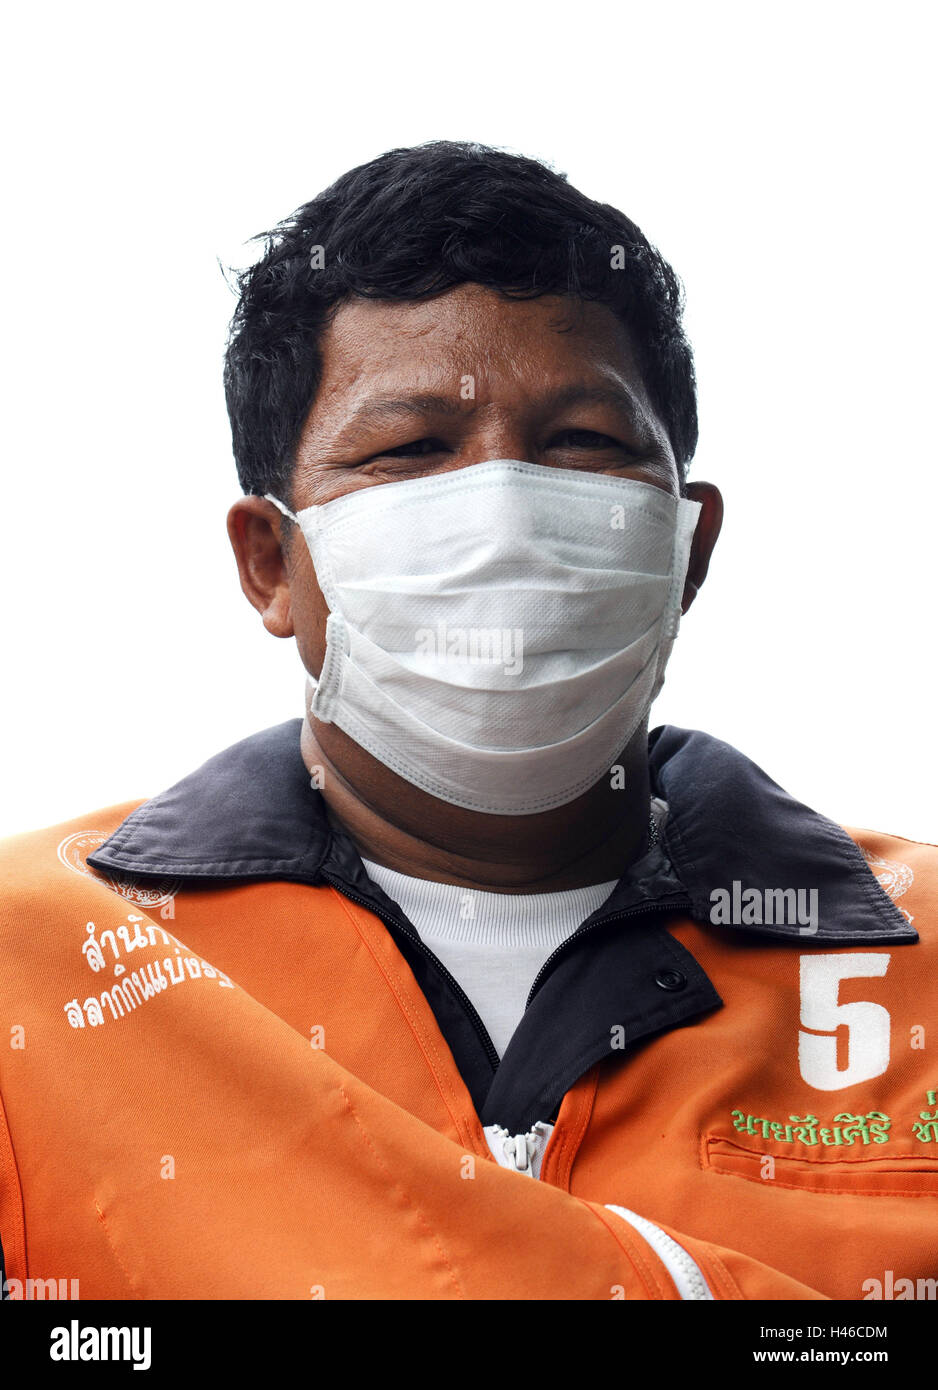 Man, view camera, mask, Thailand, pork grip, disease, prophylaxis, mask, protection, protective mask, portrait, - Stock Image